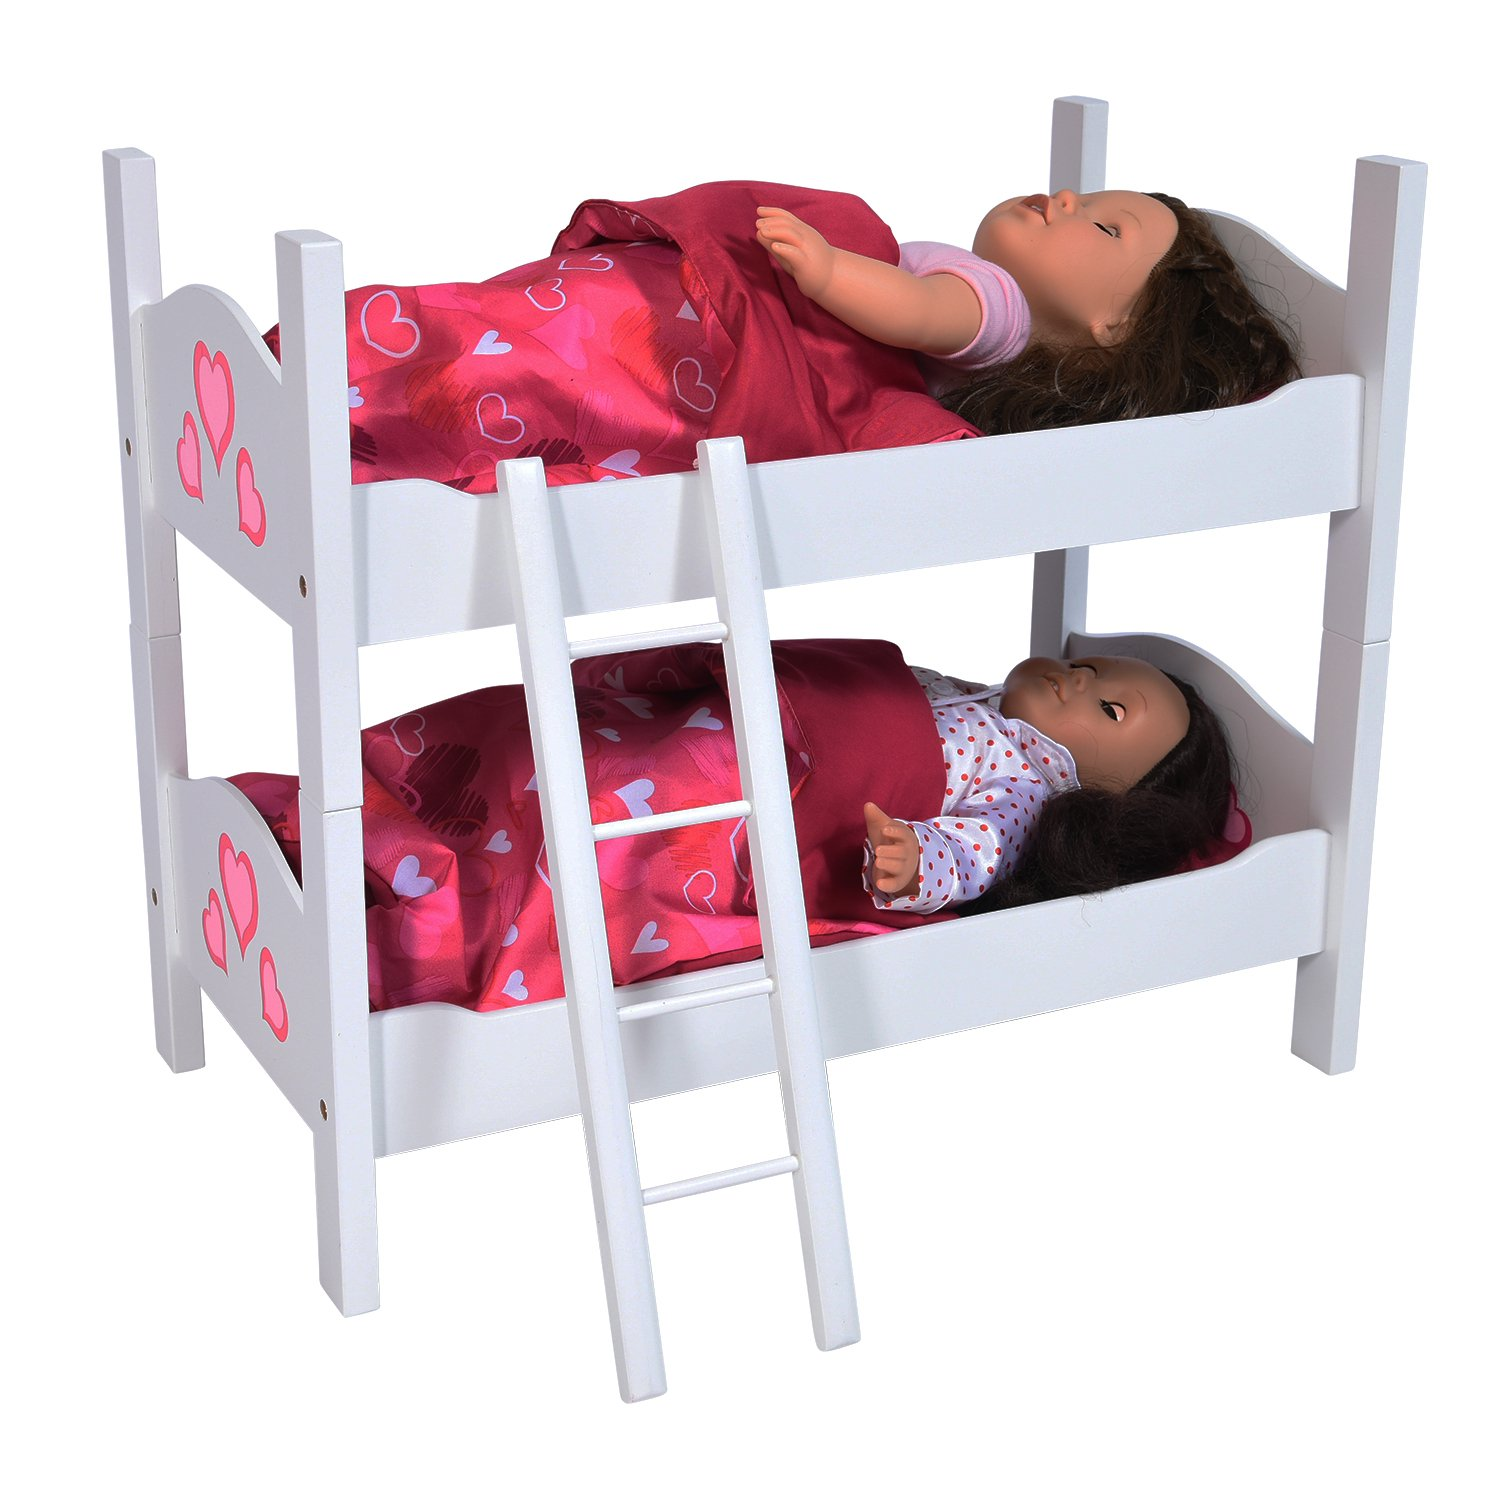 Bunk Bed Dolls: Doll Bunk Bed Kids Toys Toddler Girl Boy Pretend Play Fits